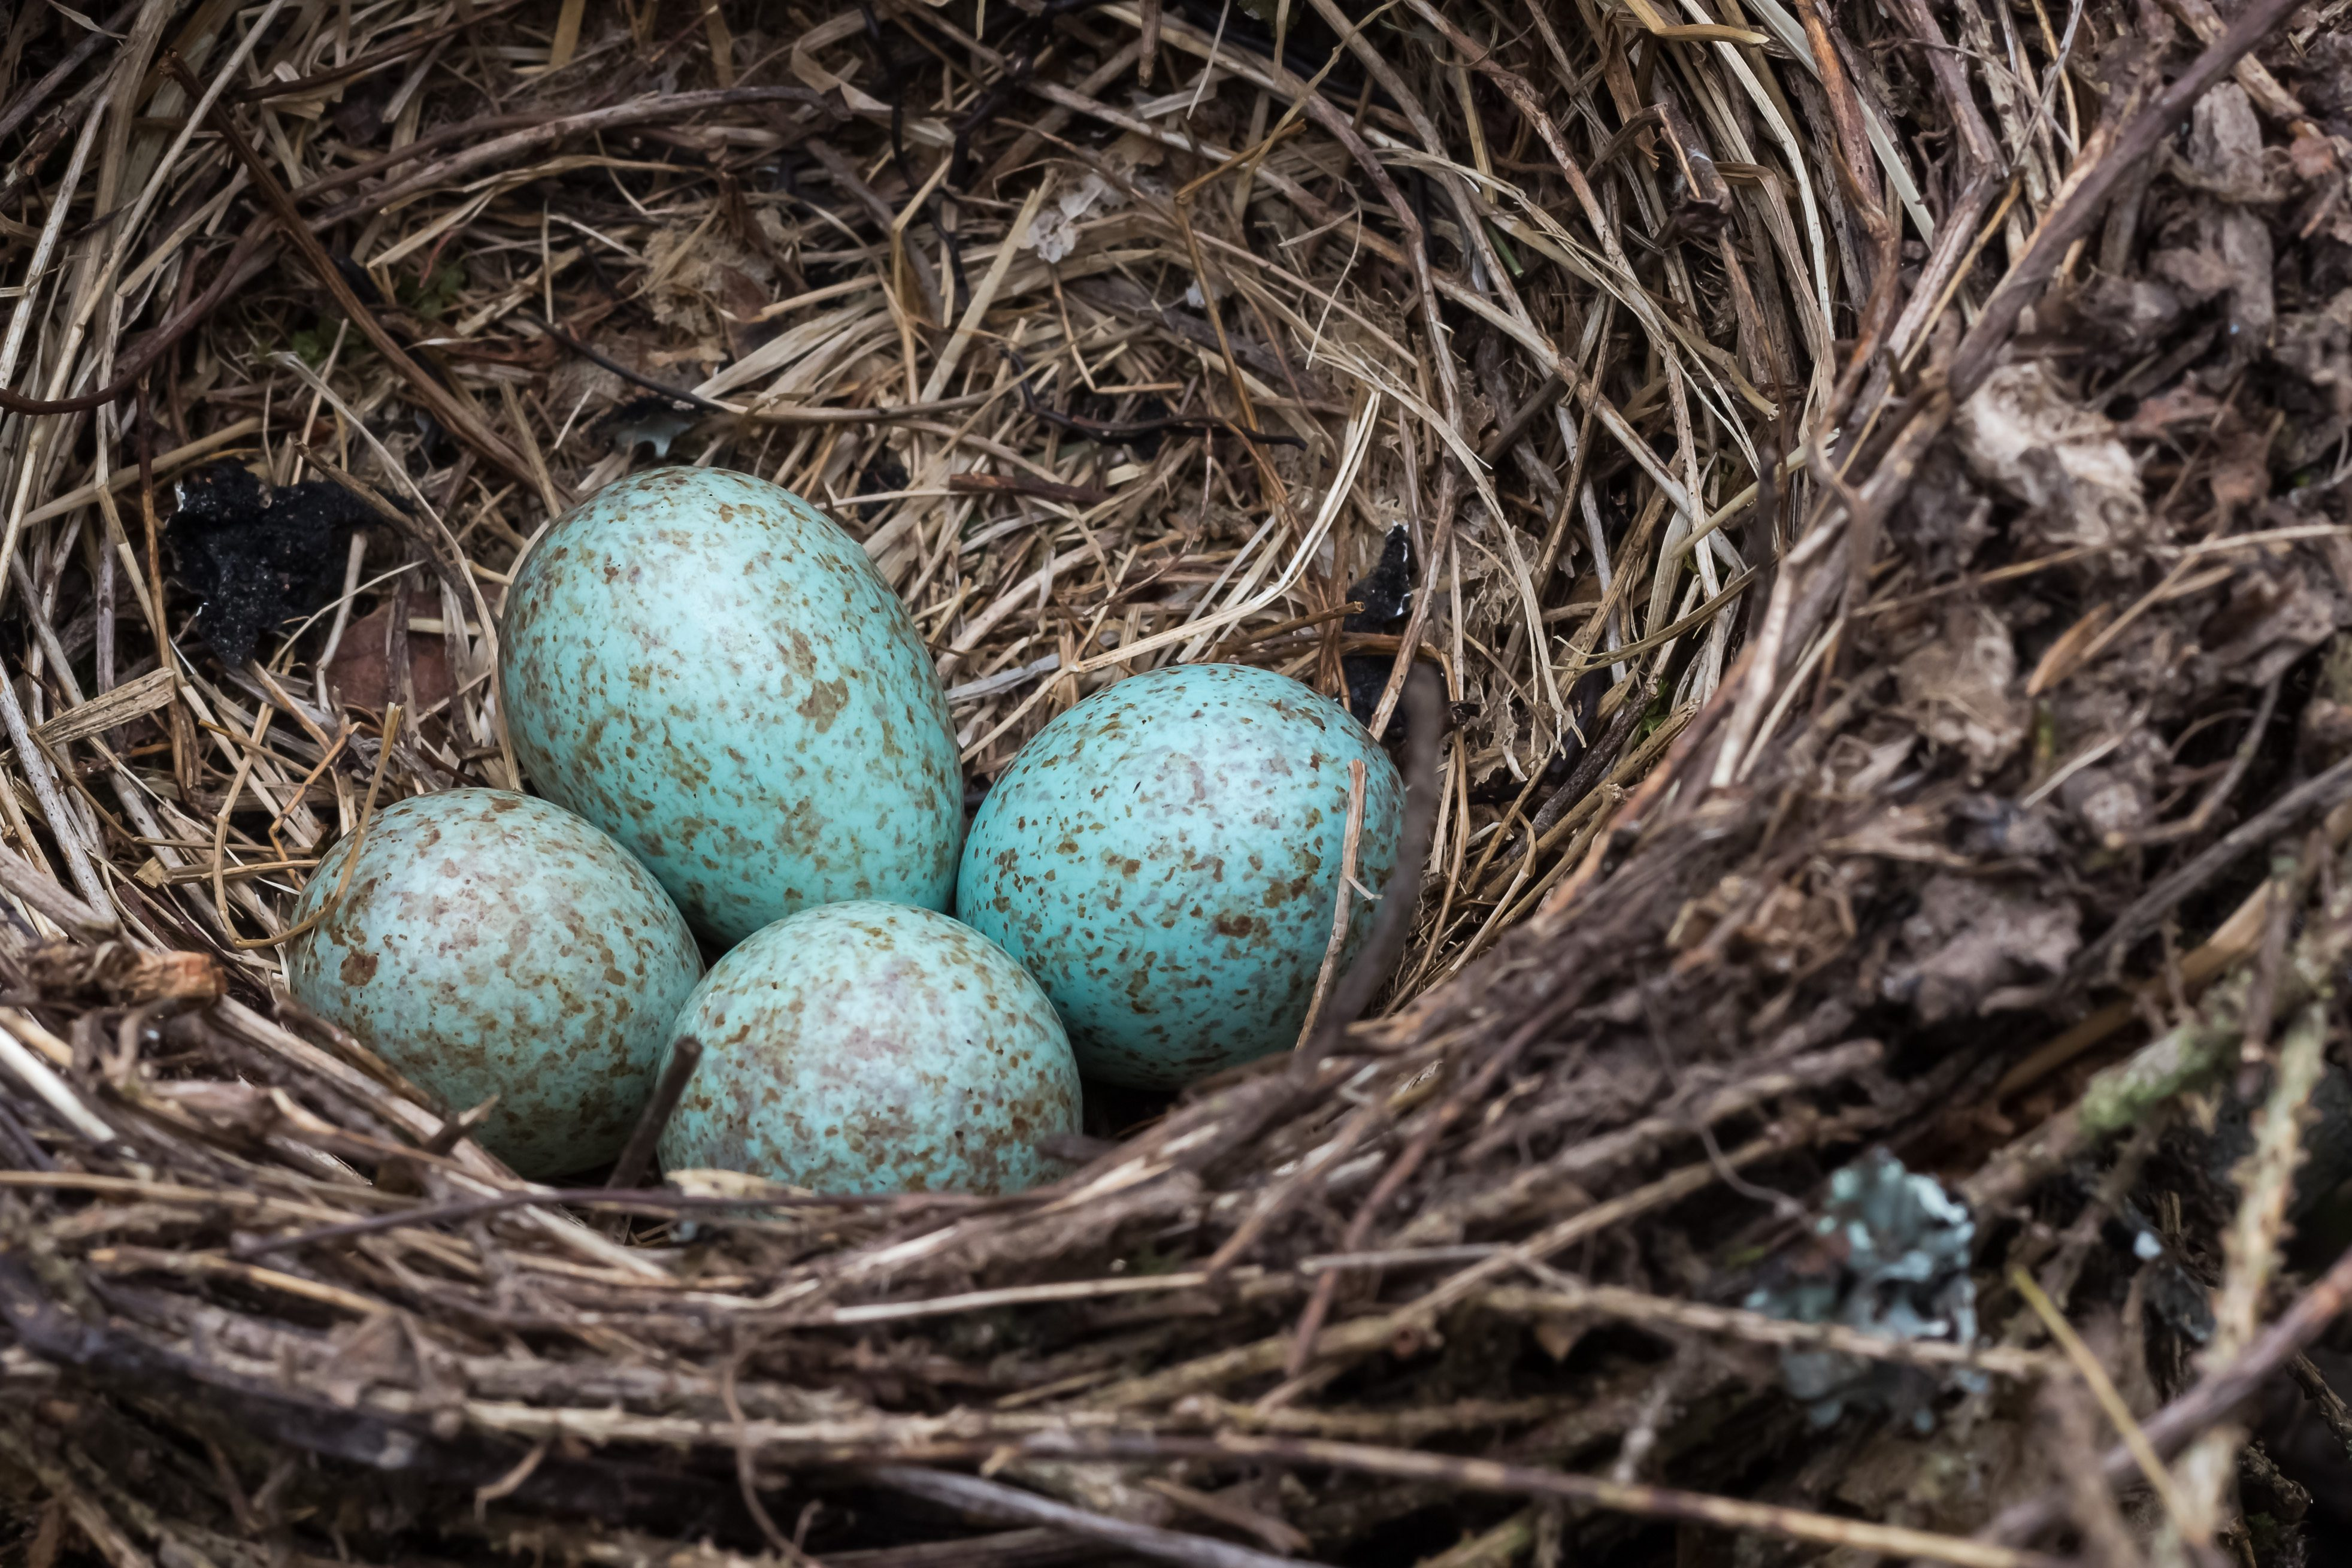 A blue jay's nest with blue eggs.